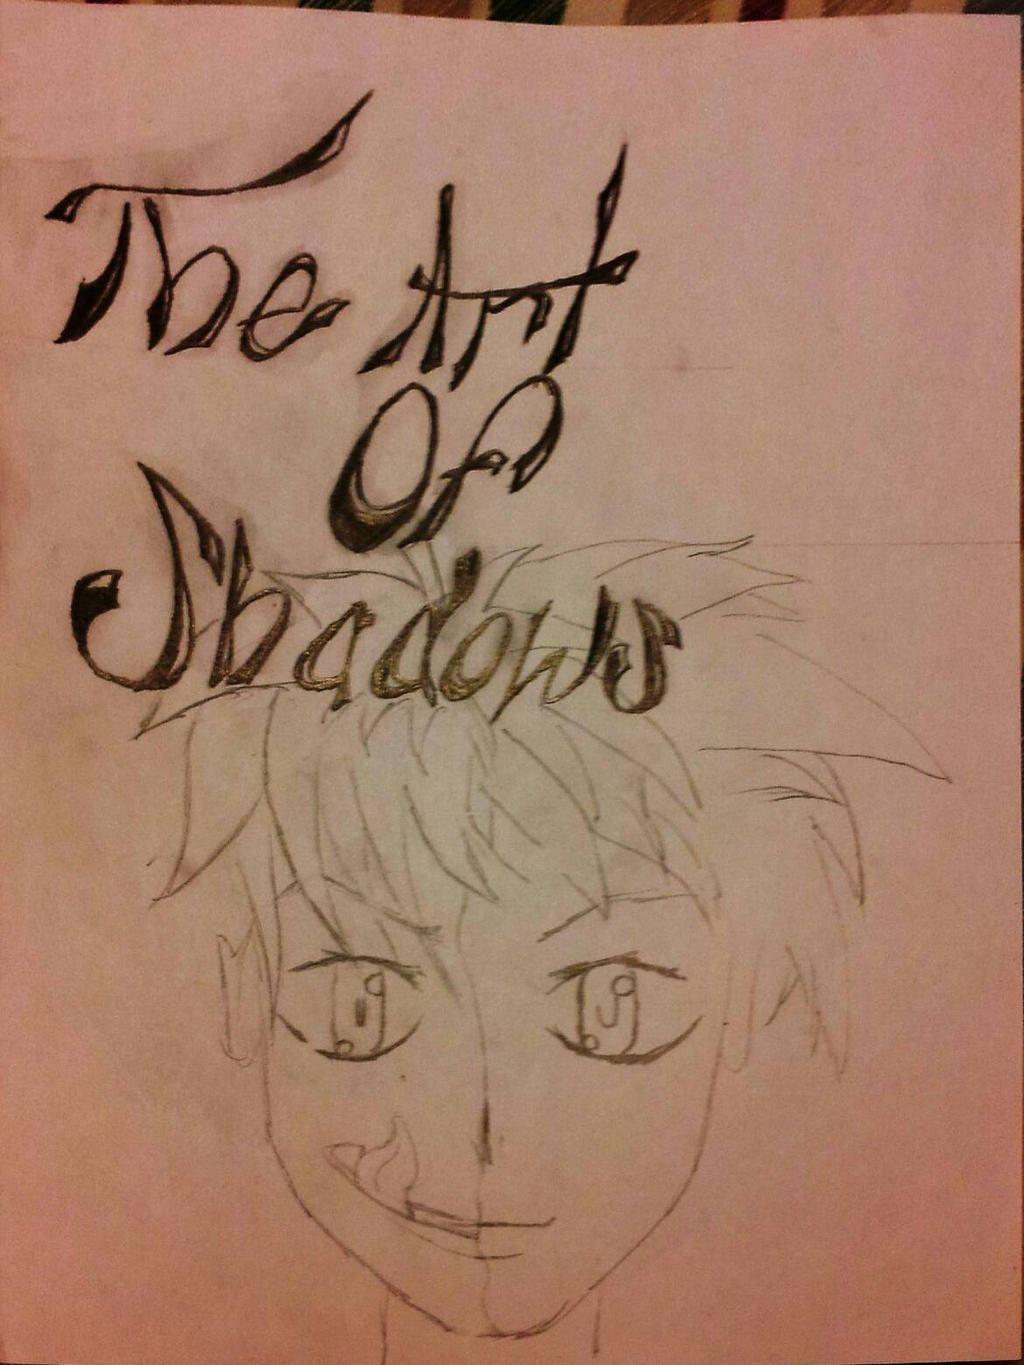 'The Art of Shadows' by lilwarrior103